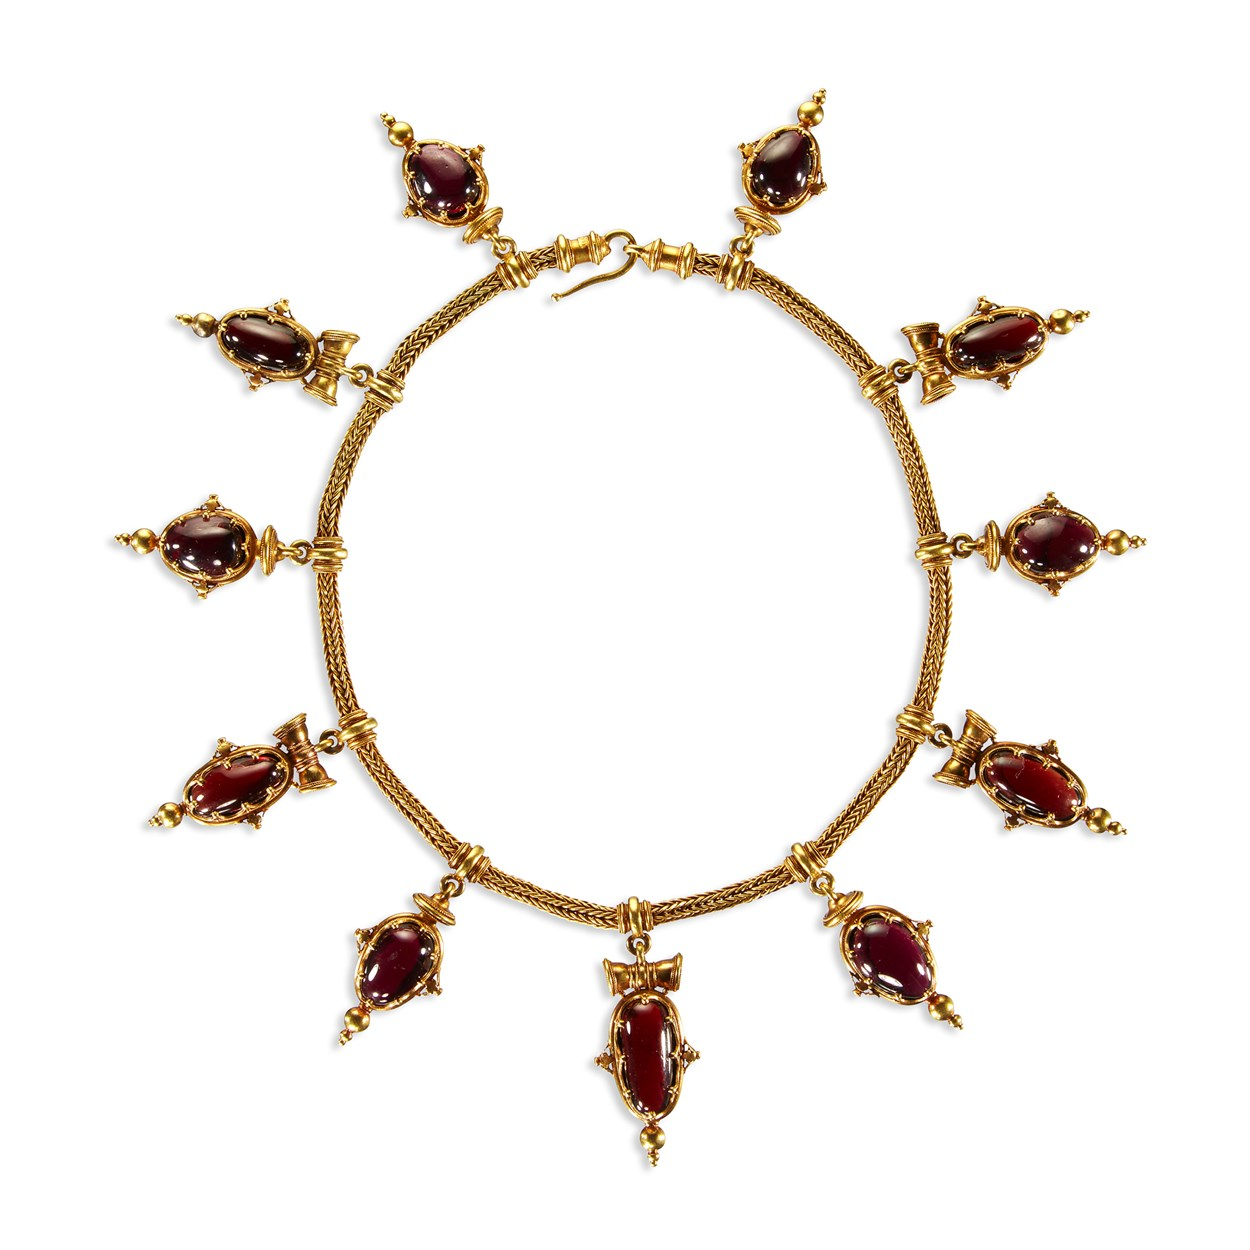 Lot 1 - An Etruscan Revival gold and garnet necklace, Pierret